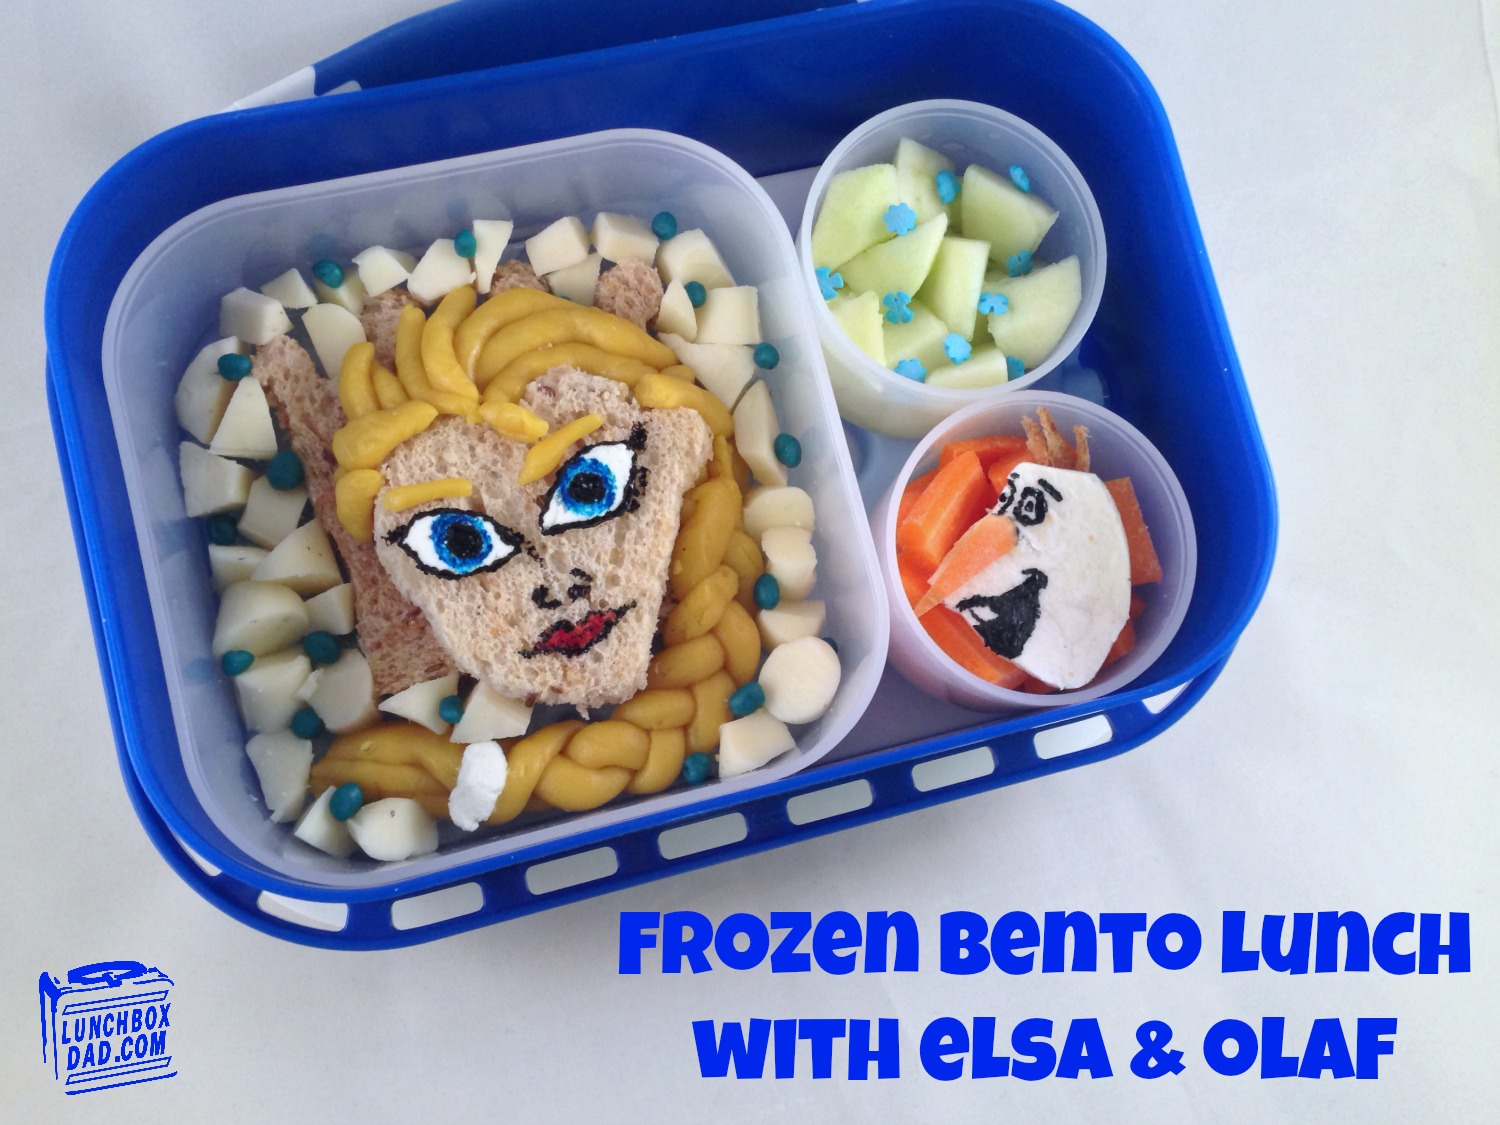 Frozen Bento Lunch With Elsa and Olaf